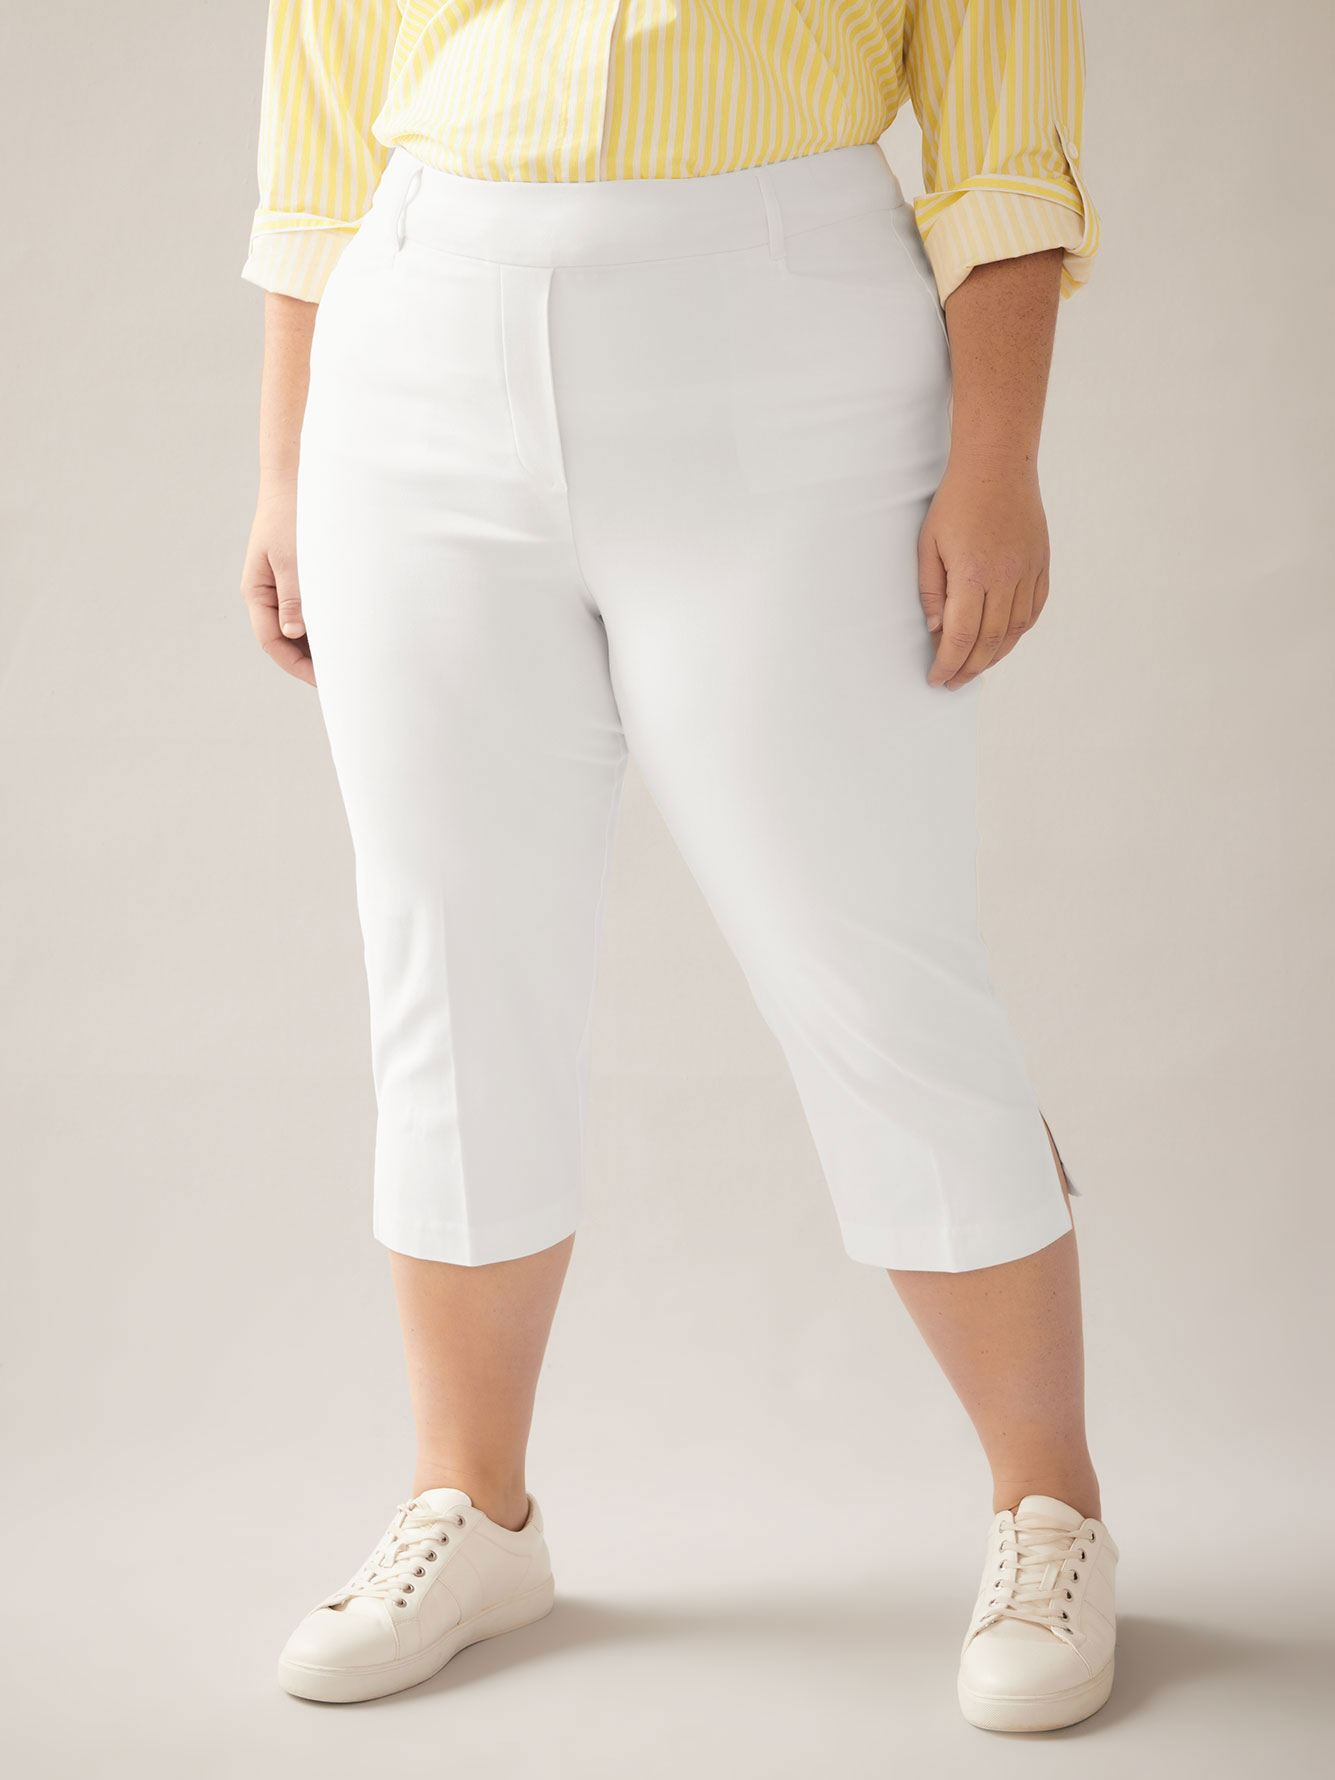 Savvy Solid Capri Pull On Pants - In Every Story